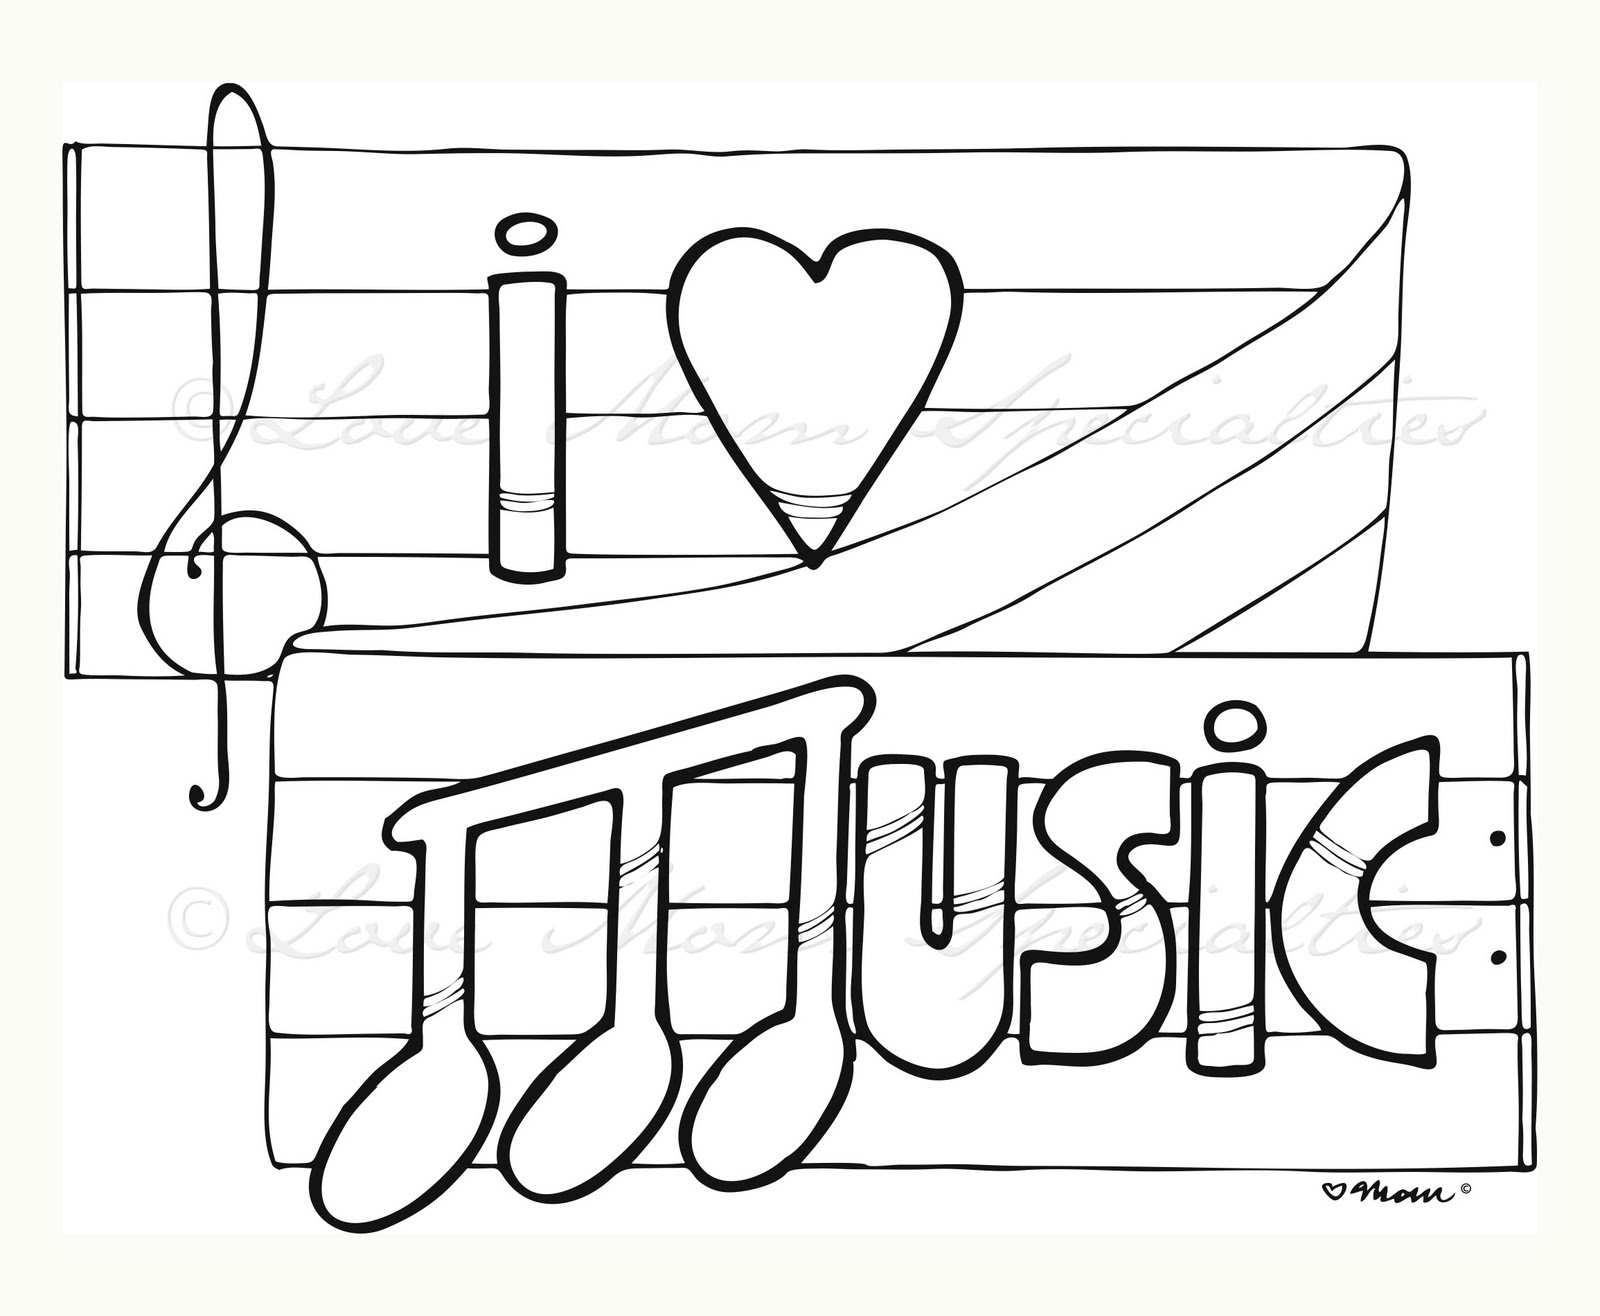 free music coloring sheets create a song with music notes coloring page kid crafts sheets free coloring music